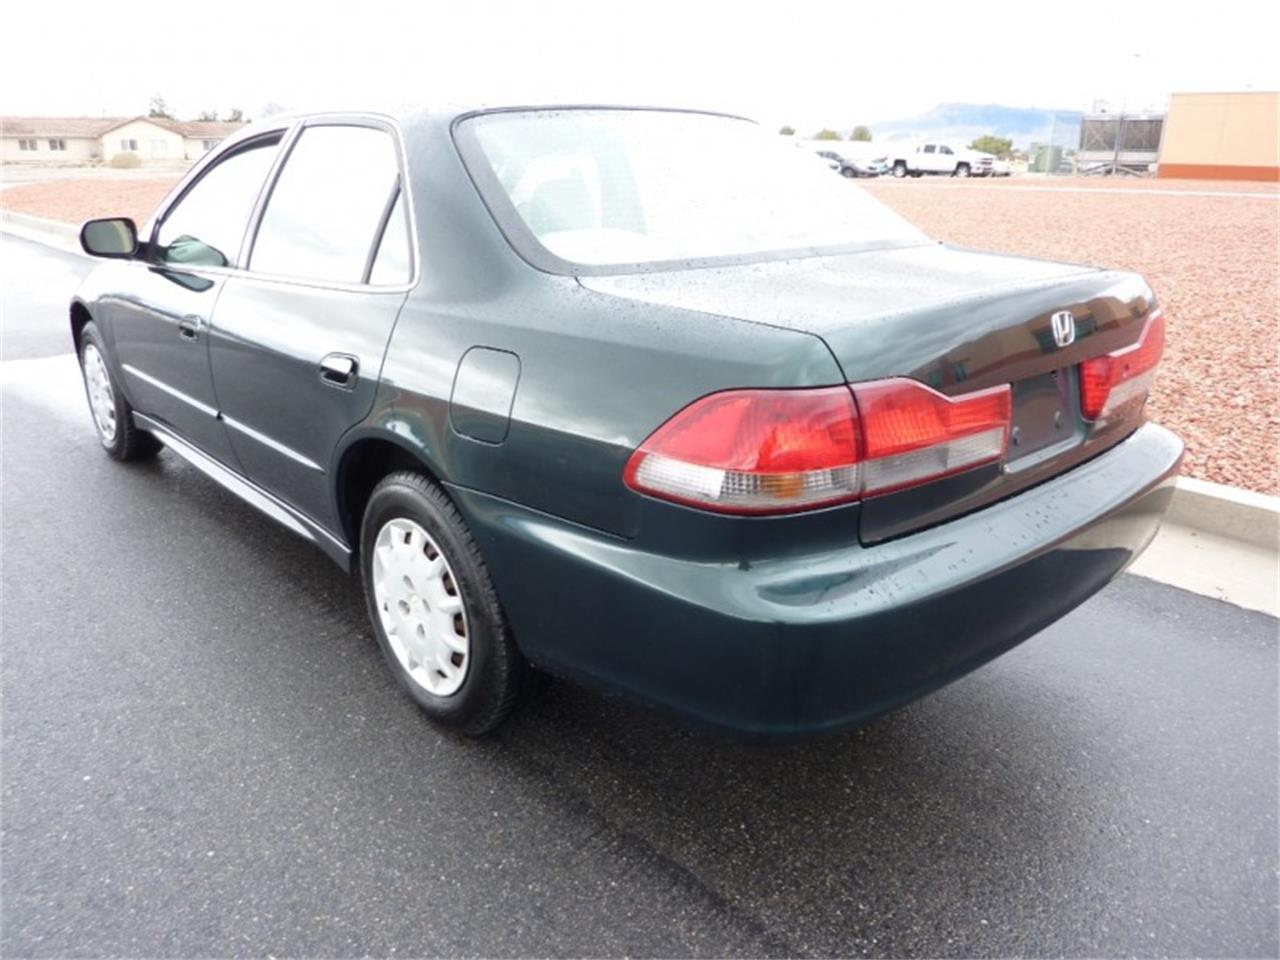 Large Picture Of 01 Honda Accord 3 399 00 Offered By Wdc Global Exports Pm7h